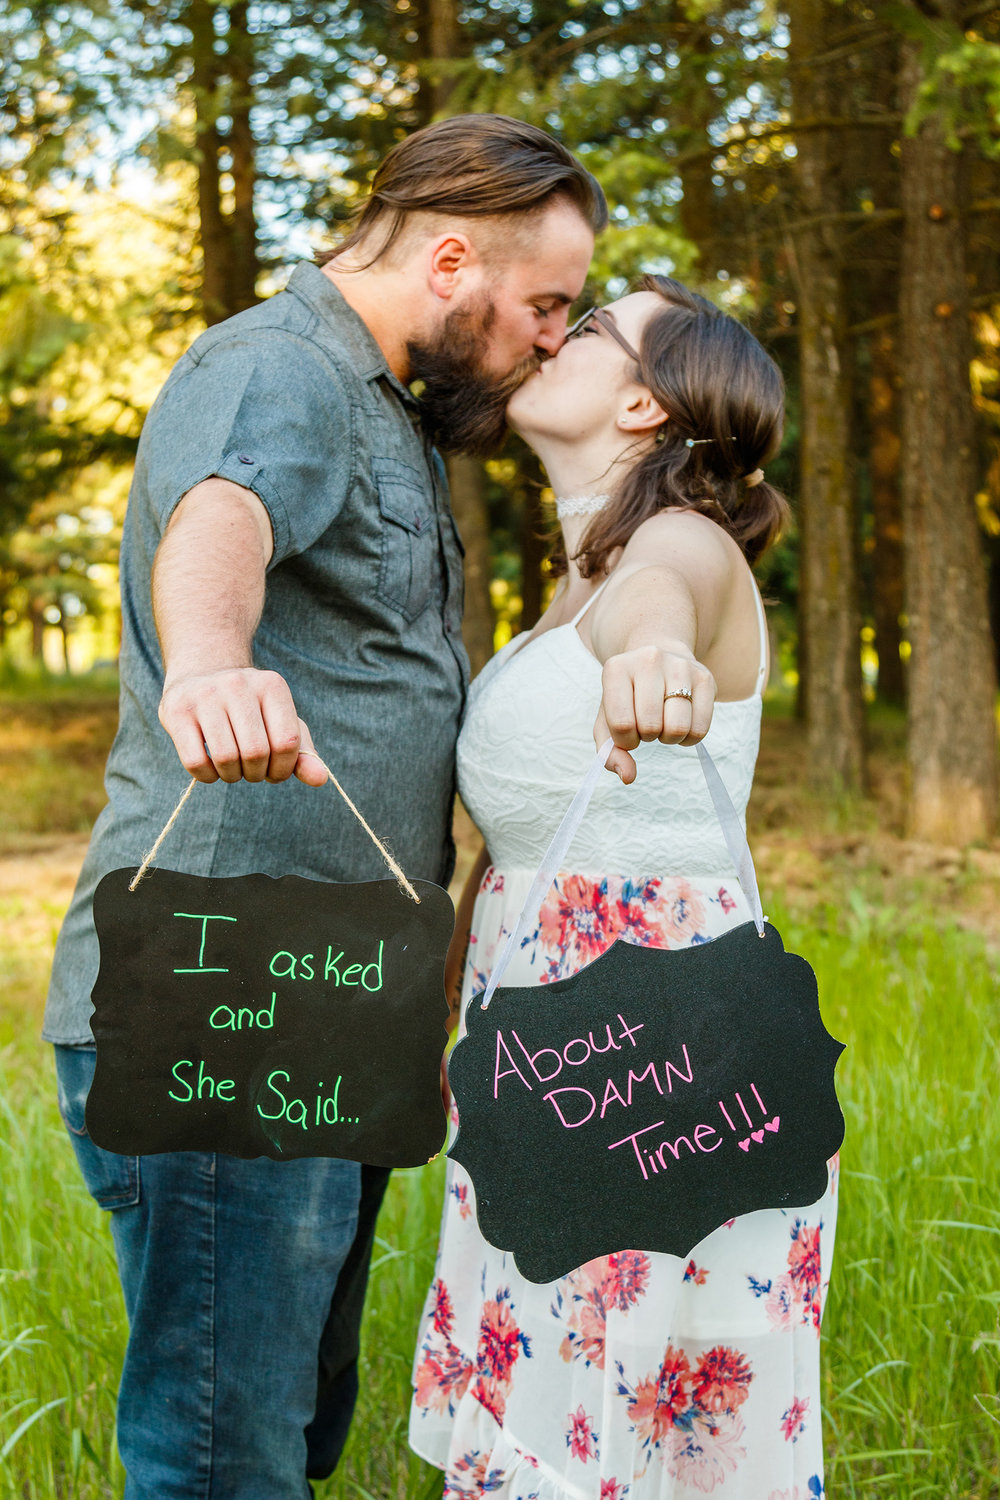 Jon & Ashley Engagement Session-20180602_102.jpg